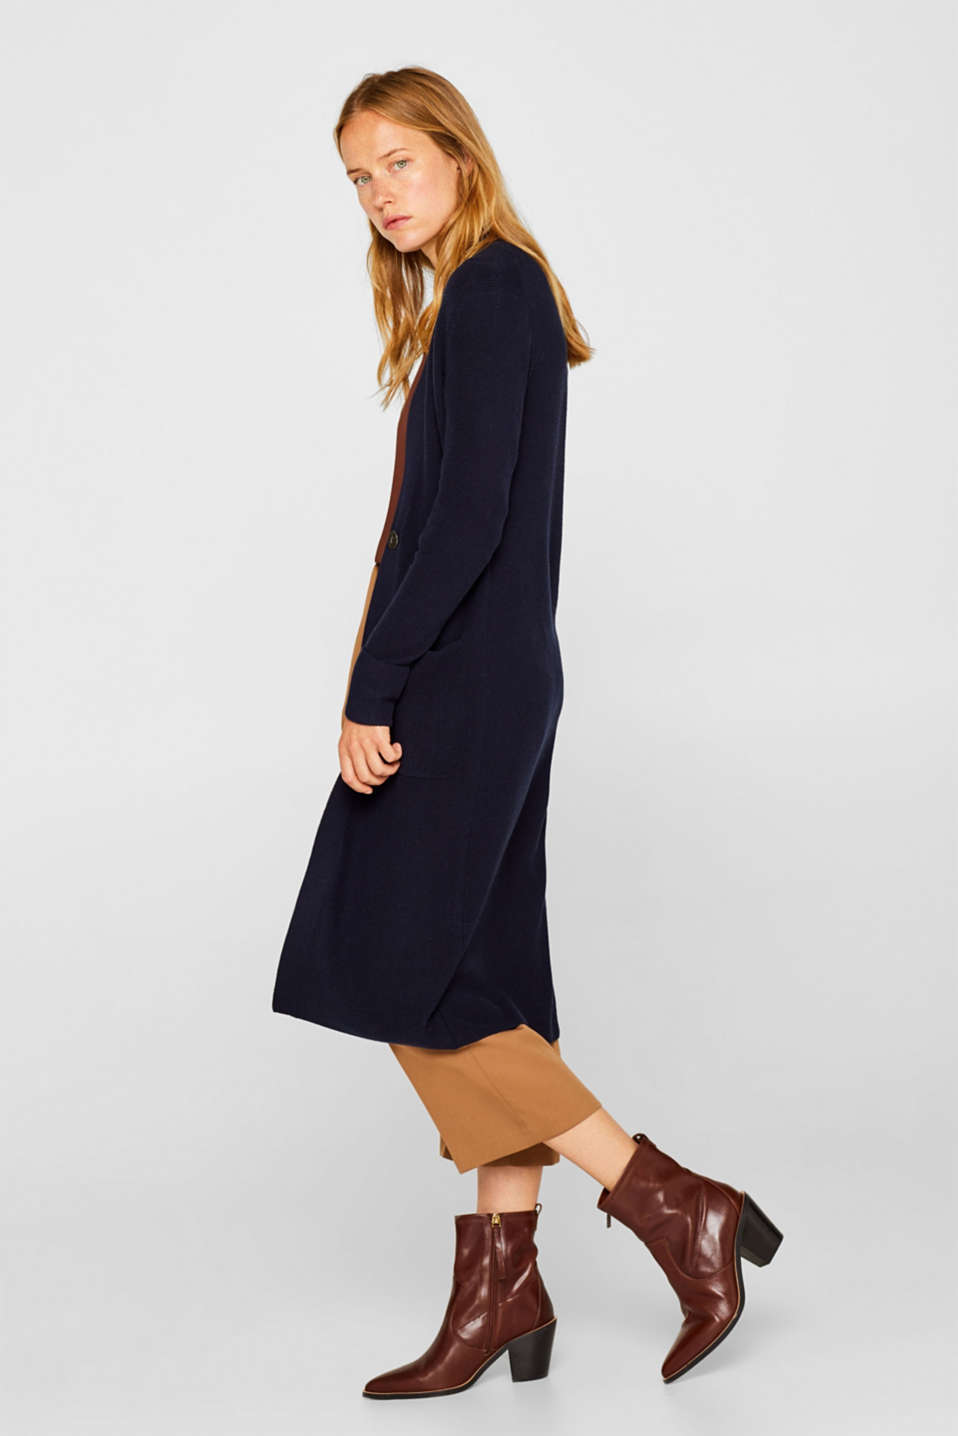 With cashmere: Long, rib knit cardigan, NAVY 2, detail image number 1